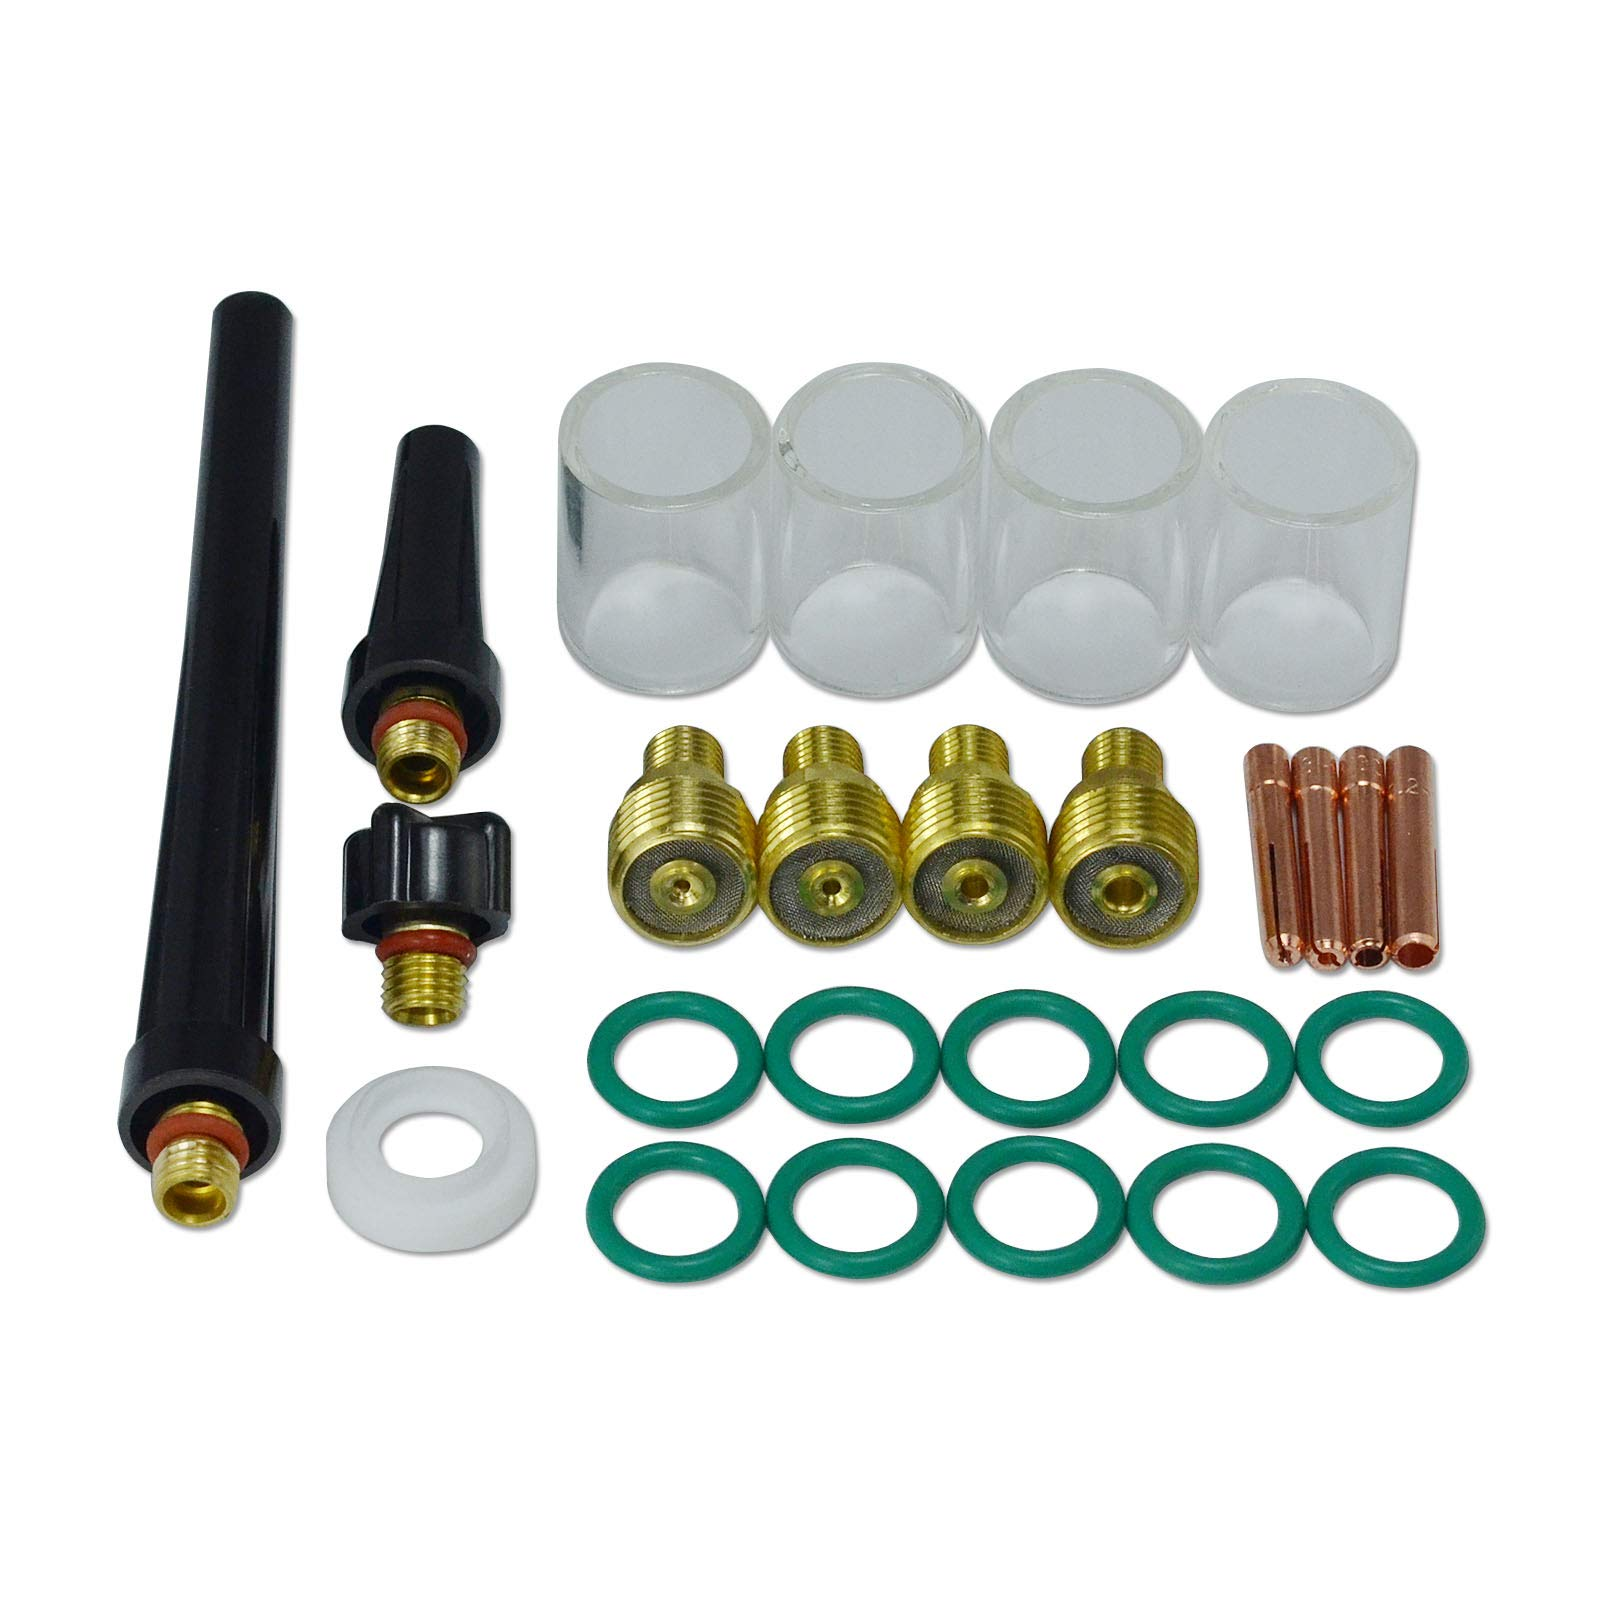 TIG Gas Lens Collet Body Pyrex Cup Kit DB SR WP 9 20 25 TIG Welding Torch 26pcs by RIVERWELD